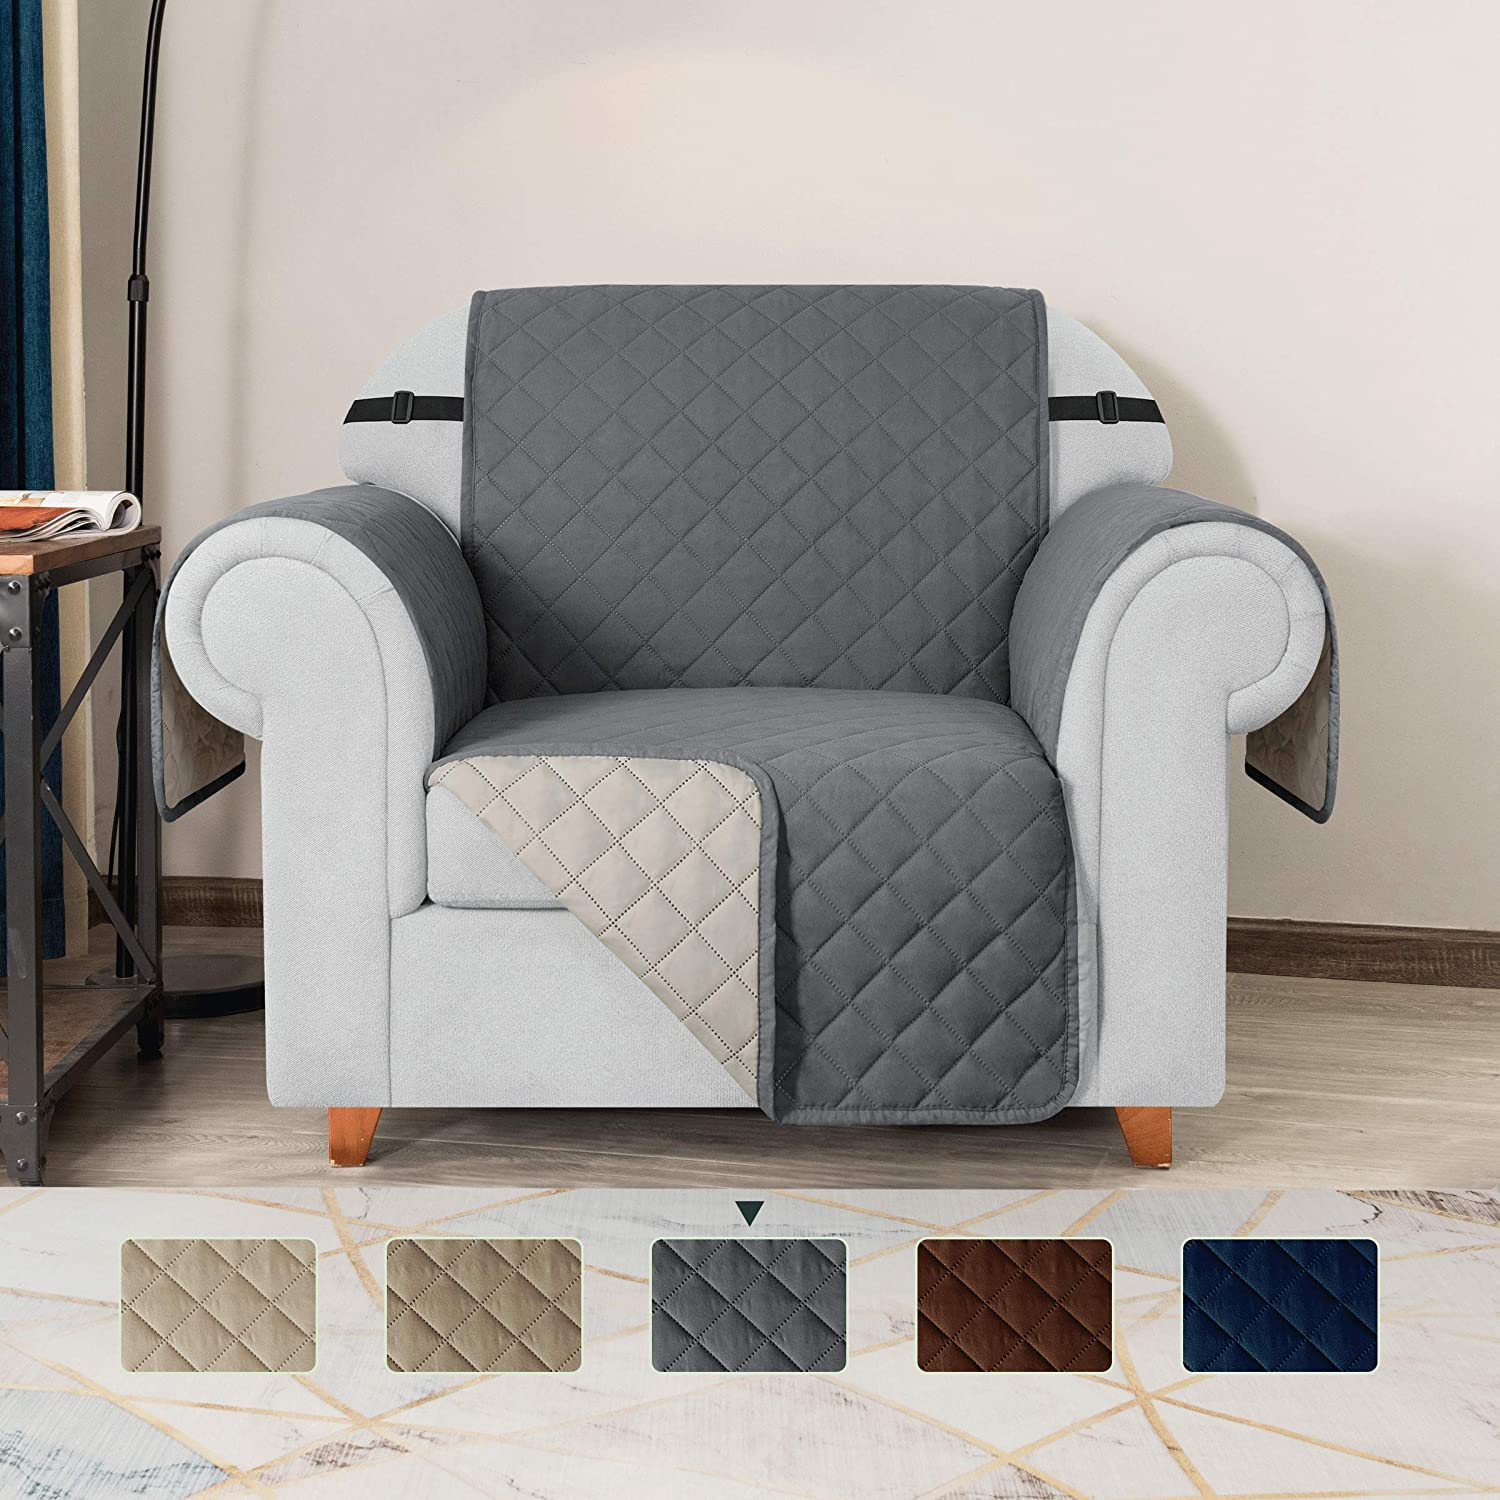 TOYABR Small Sofa Cover Reversible Couch Cover with Elastic Adjustable Strap Furniture Protector Fitted Seat Width Up to 23 Inch Sofa Slipcover Great for Home with Pets and Kids (Chair,Gray)